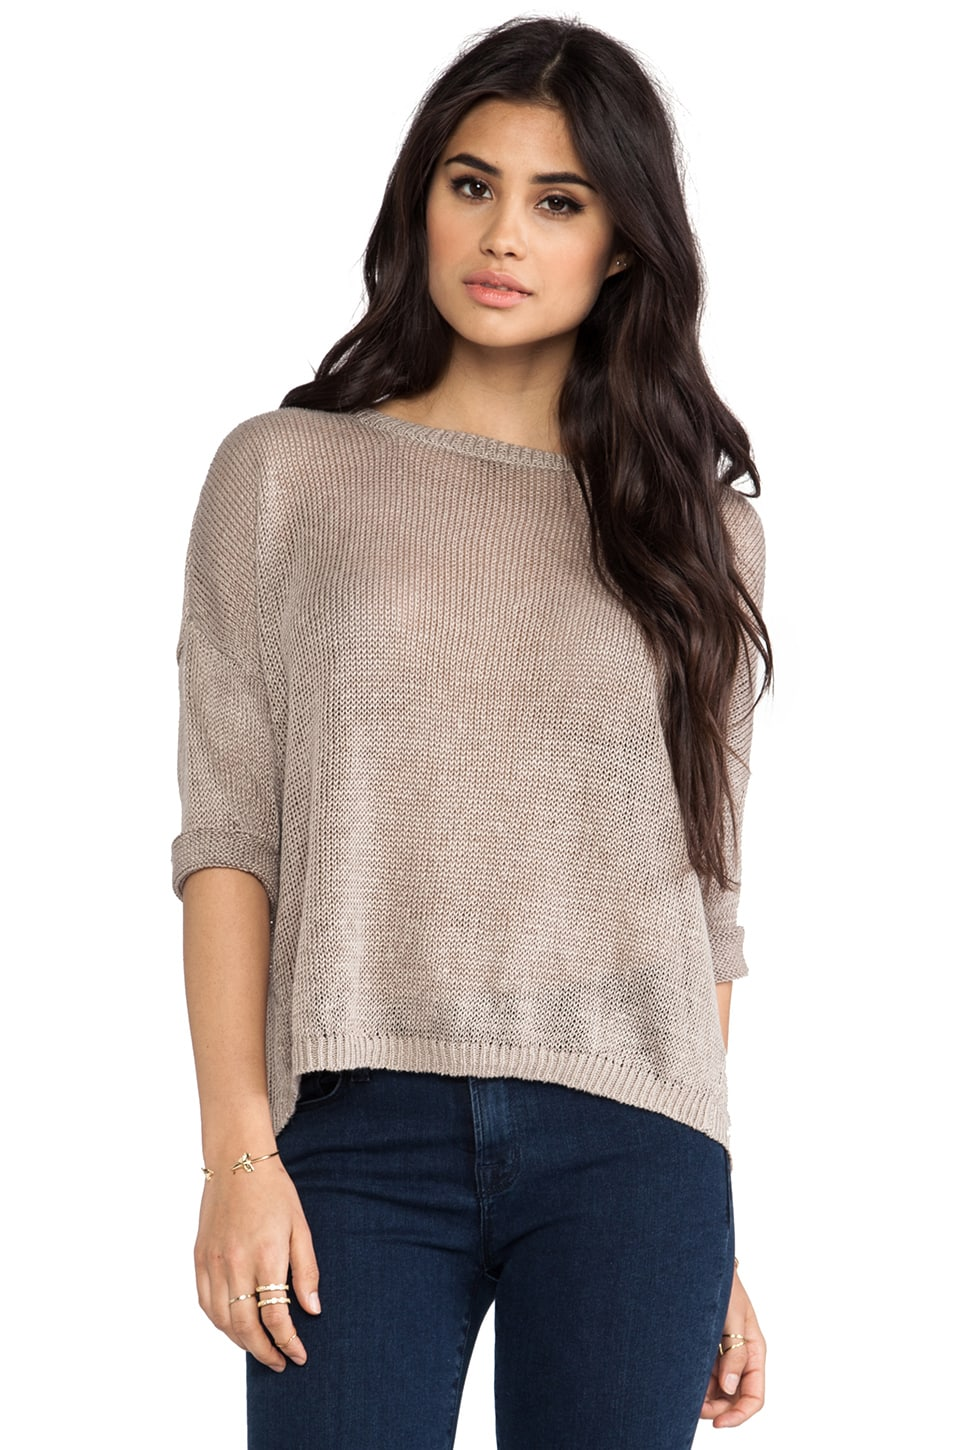 DemyLee x REVOLVE Alexa Short Sleeve Sweater in Cement